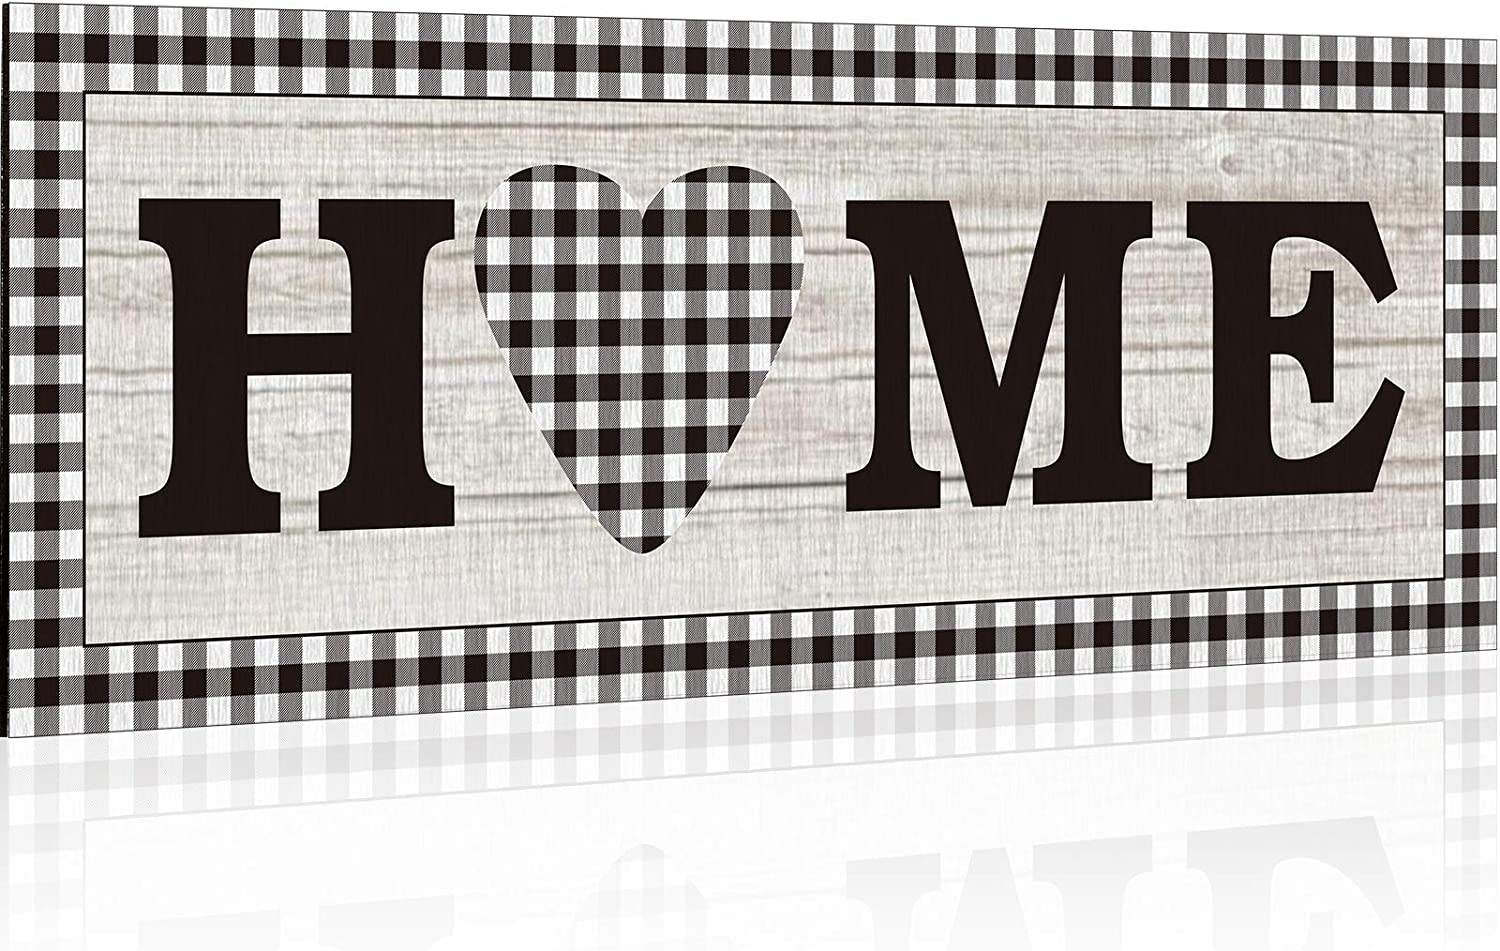 Jetec Home Wooden Sign Rustic Sweet Heart Pattern Wall Decor Buffalo Plaid Wooden Decoration Sign Rustic Wooden Wall Art Sign Farmhouse Sign for Home, Bedroom, Living Room, Wall, Wedding Decor